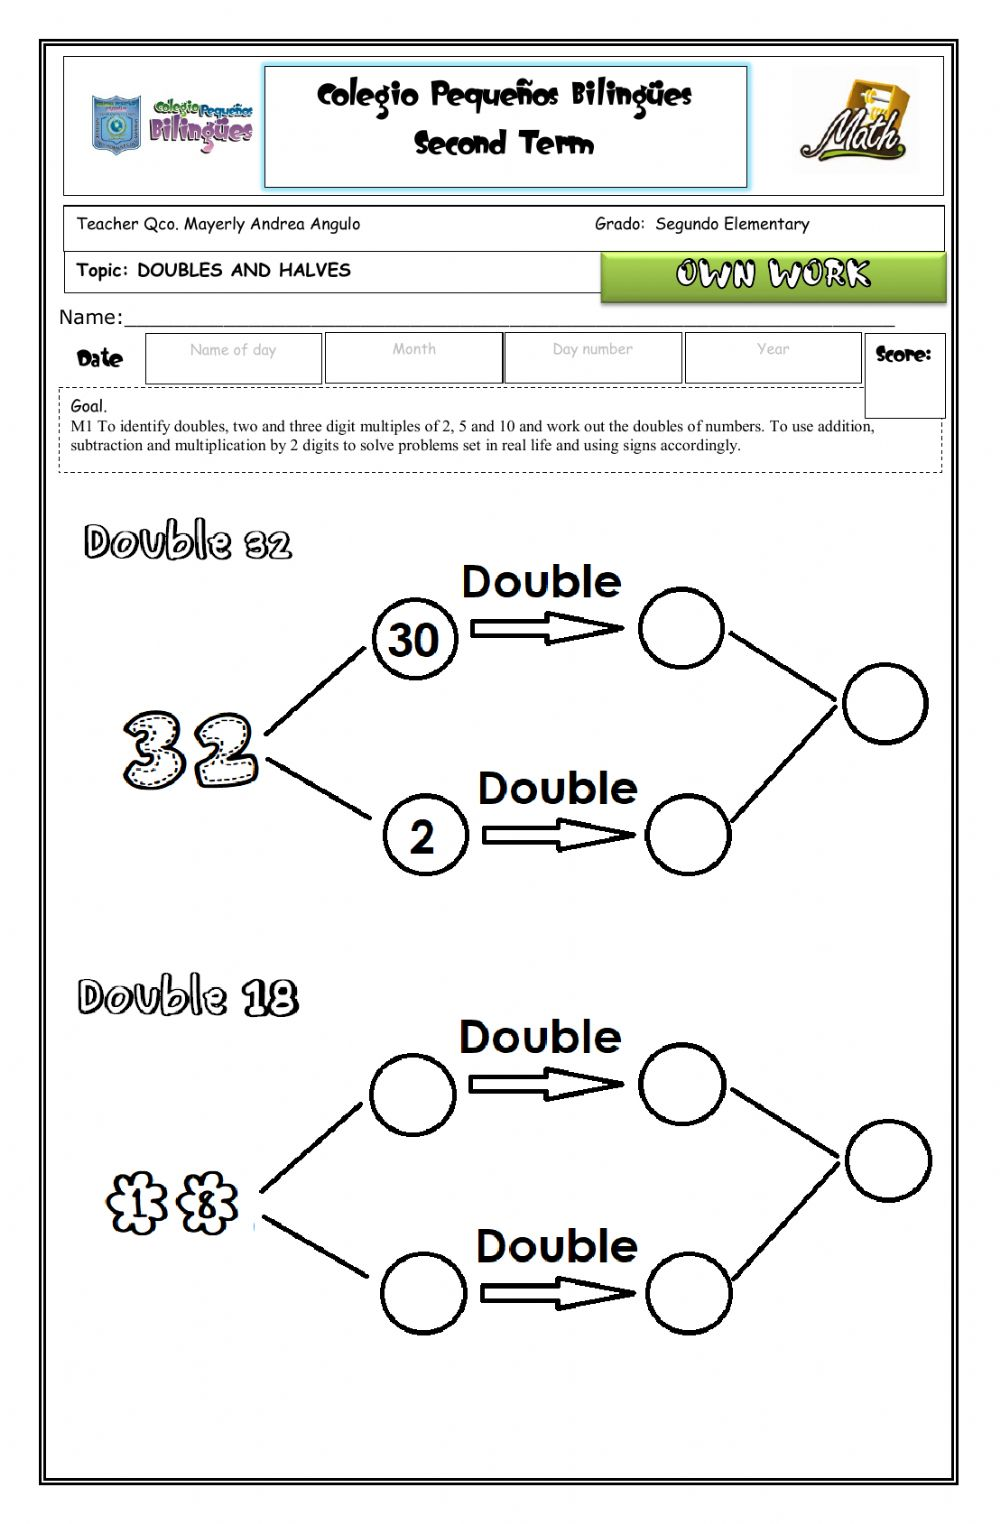 hight resolution of Own work- doubles and halves worksheet